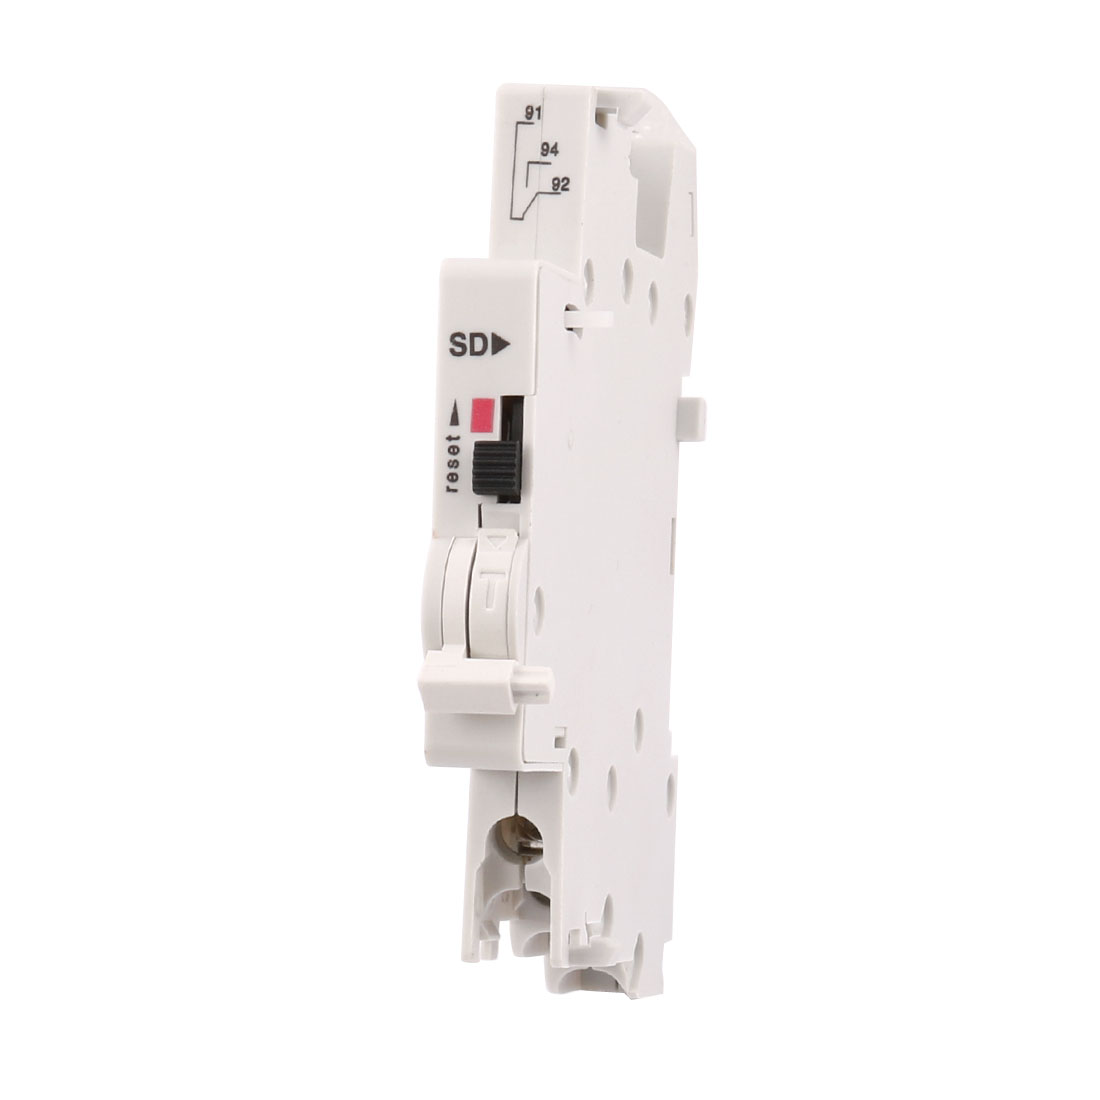 SD Alarm Contacts Auxiliary Switch Miniature Circuit Breaker for C65 MCB